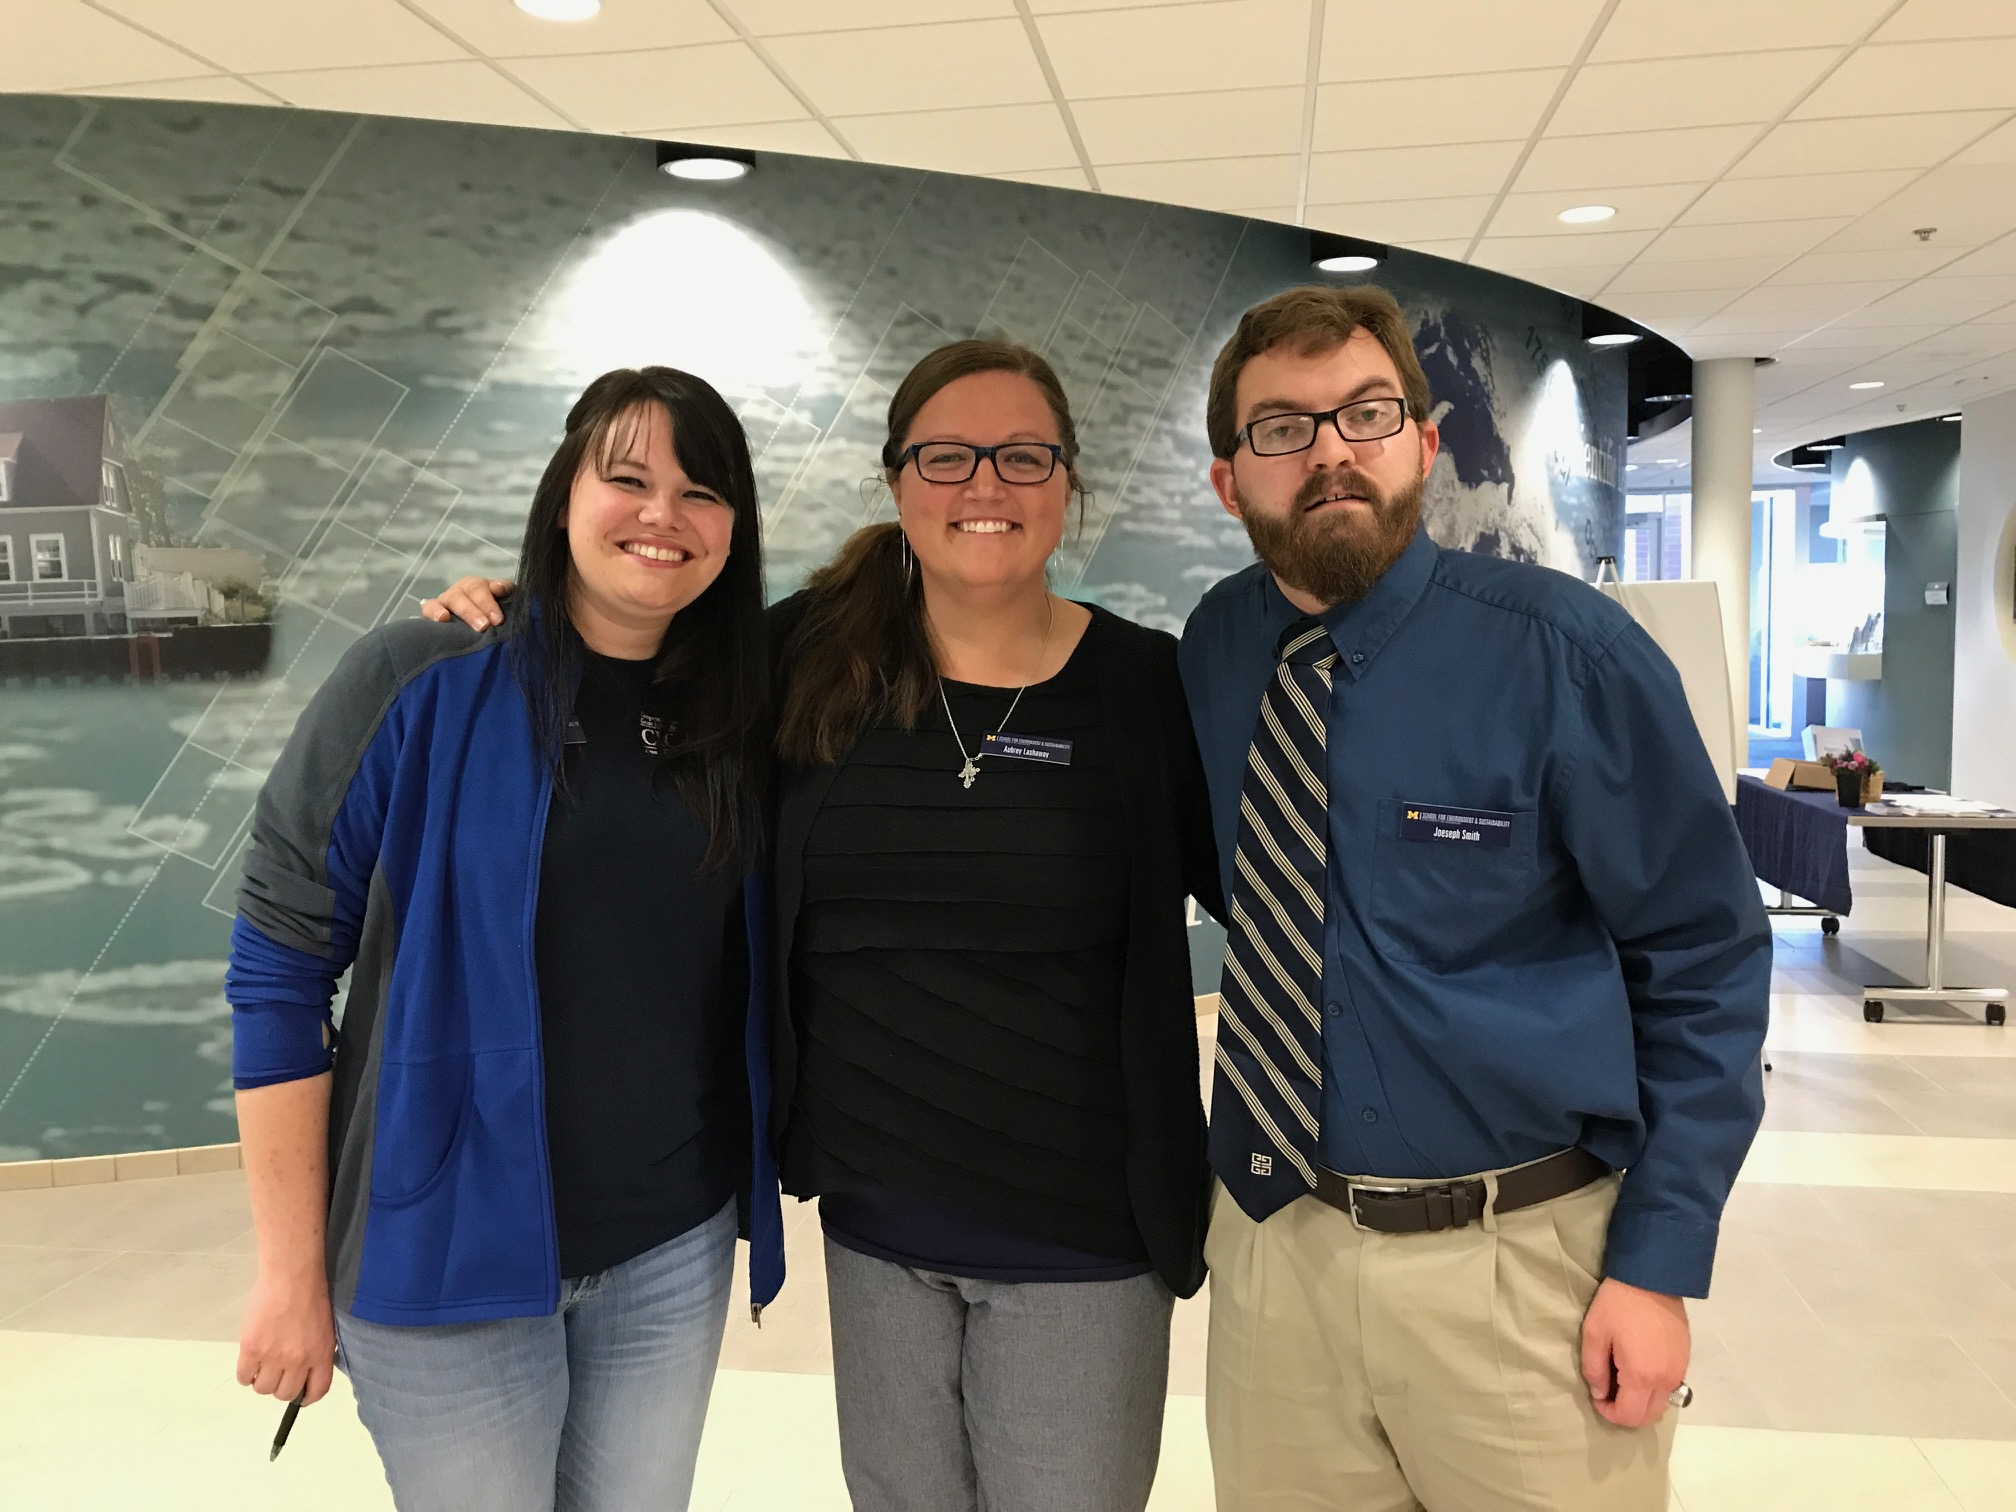 L-R: CIGLR Atmospheric Data Analyst Lindsay Fitzpatrick, Communications Specialist Aubrey Lashaway and General Programmer Joeseph Smith enjoying the CIGLR Annual Partners Meeting. Photo Credit: Michele Wensman.